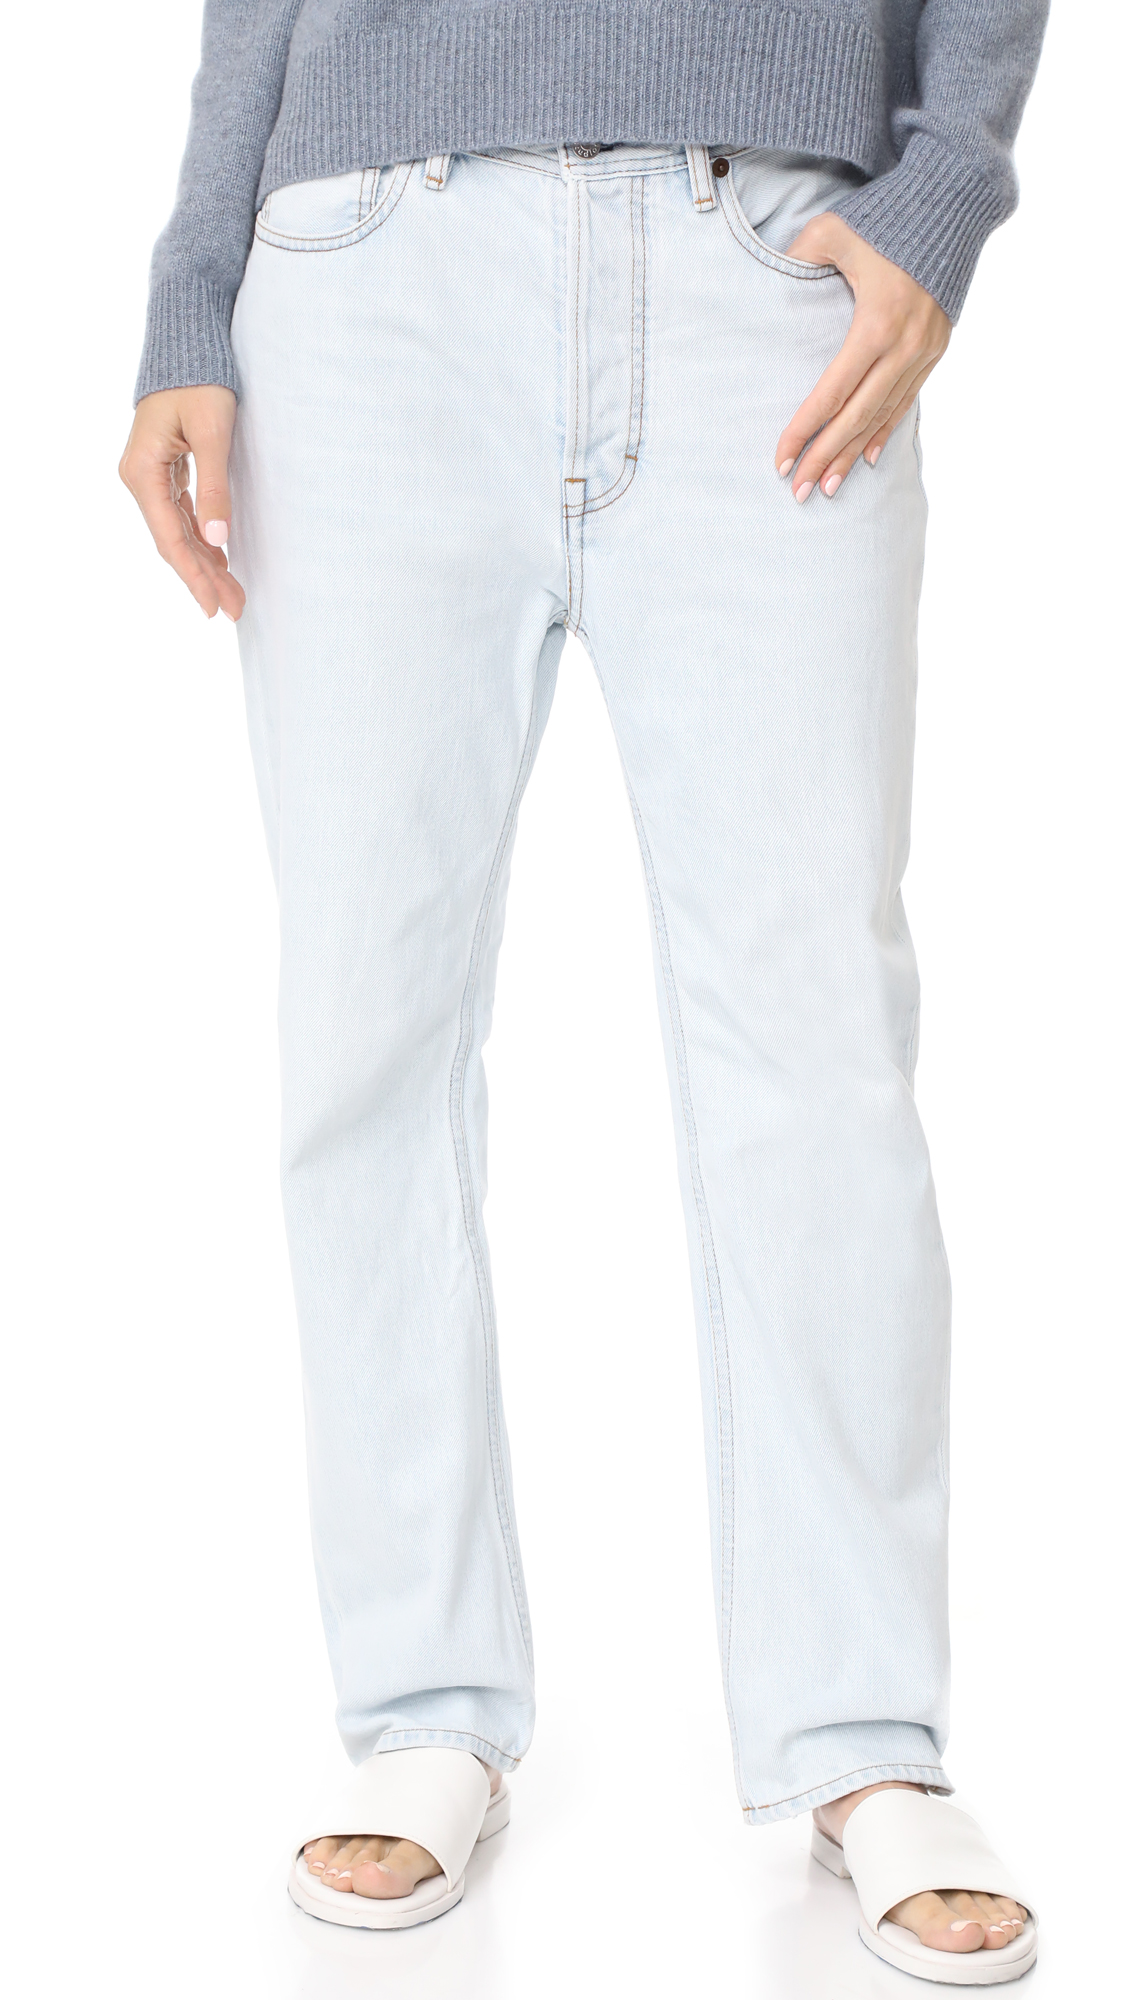 Acne Studios Log Light Jeans - Light Blue